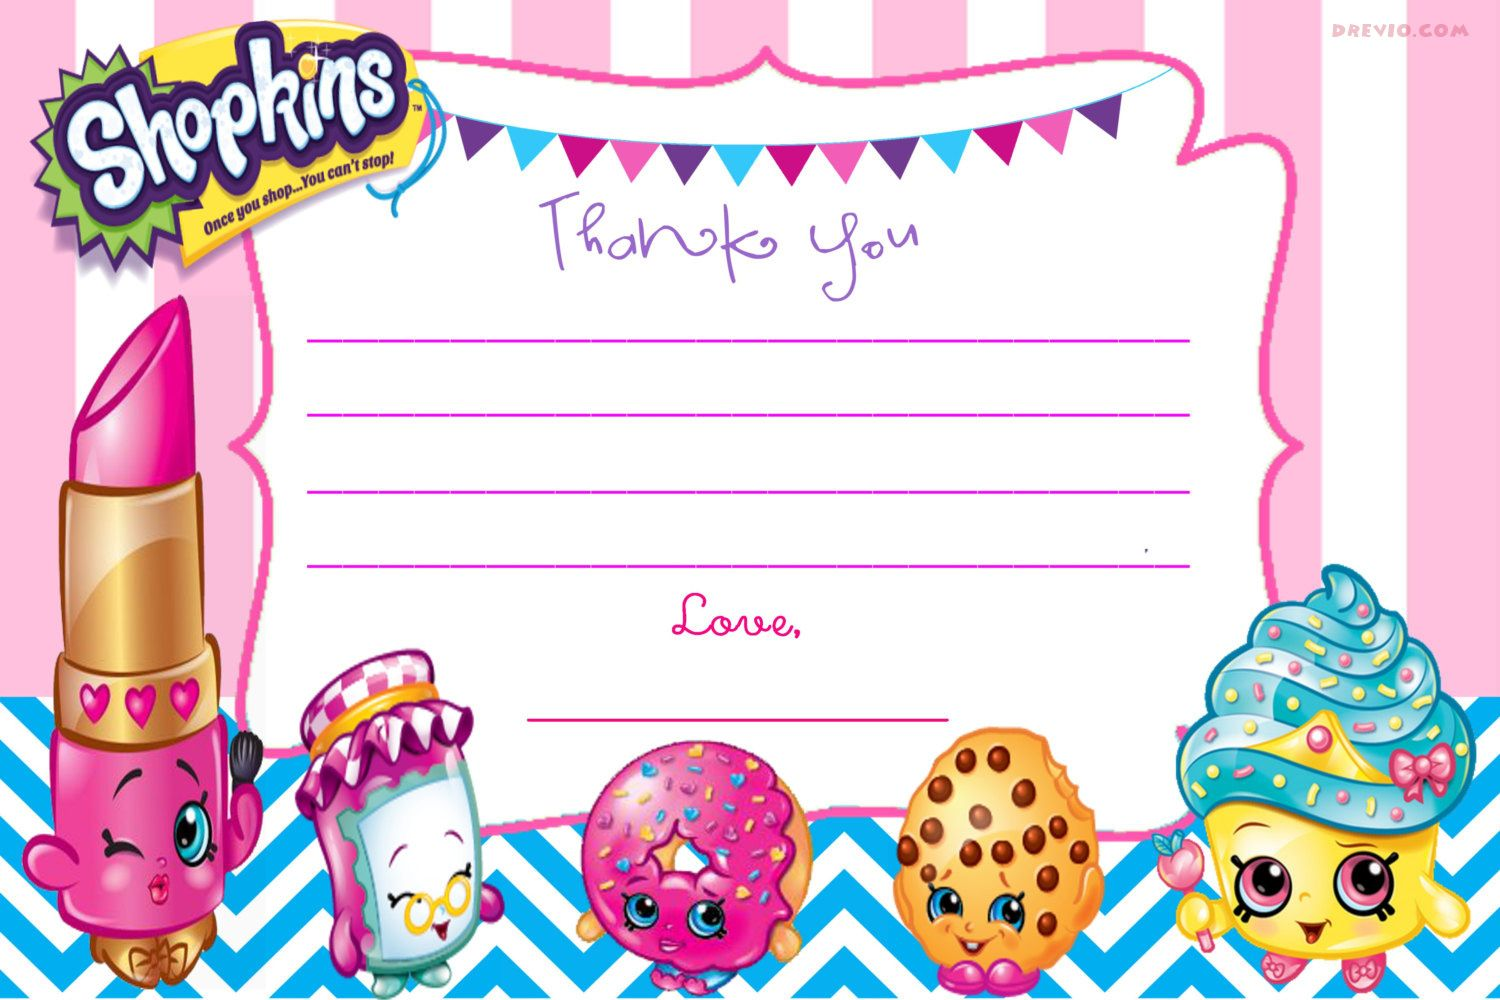 photo relating to Free Printable Shopkins Invitations named Current Absolutely free Printable Shopkins Birthday Invitation